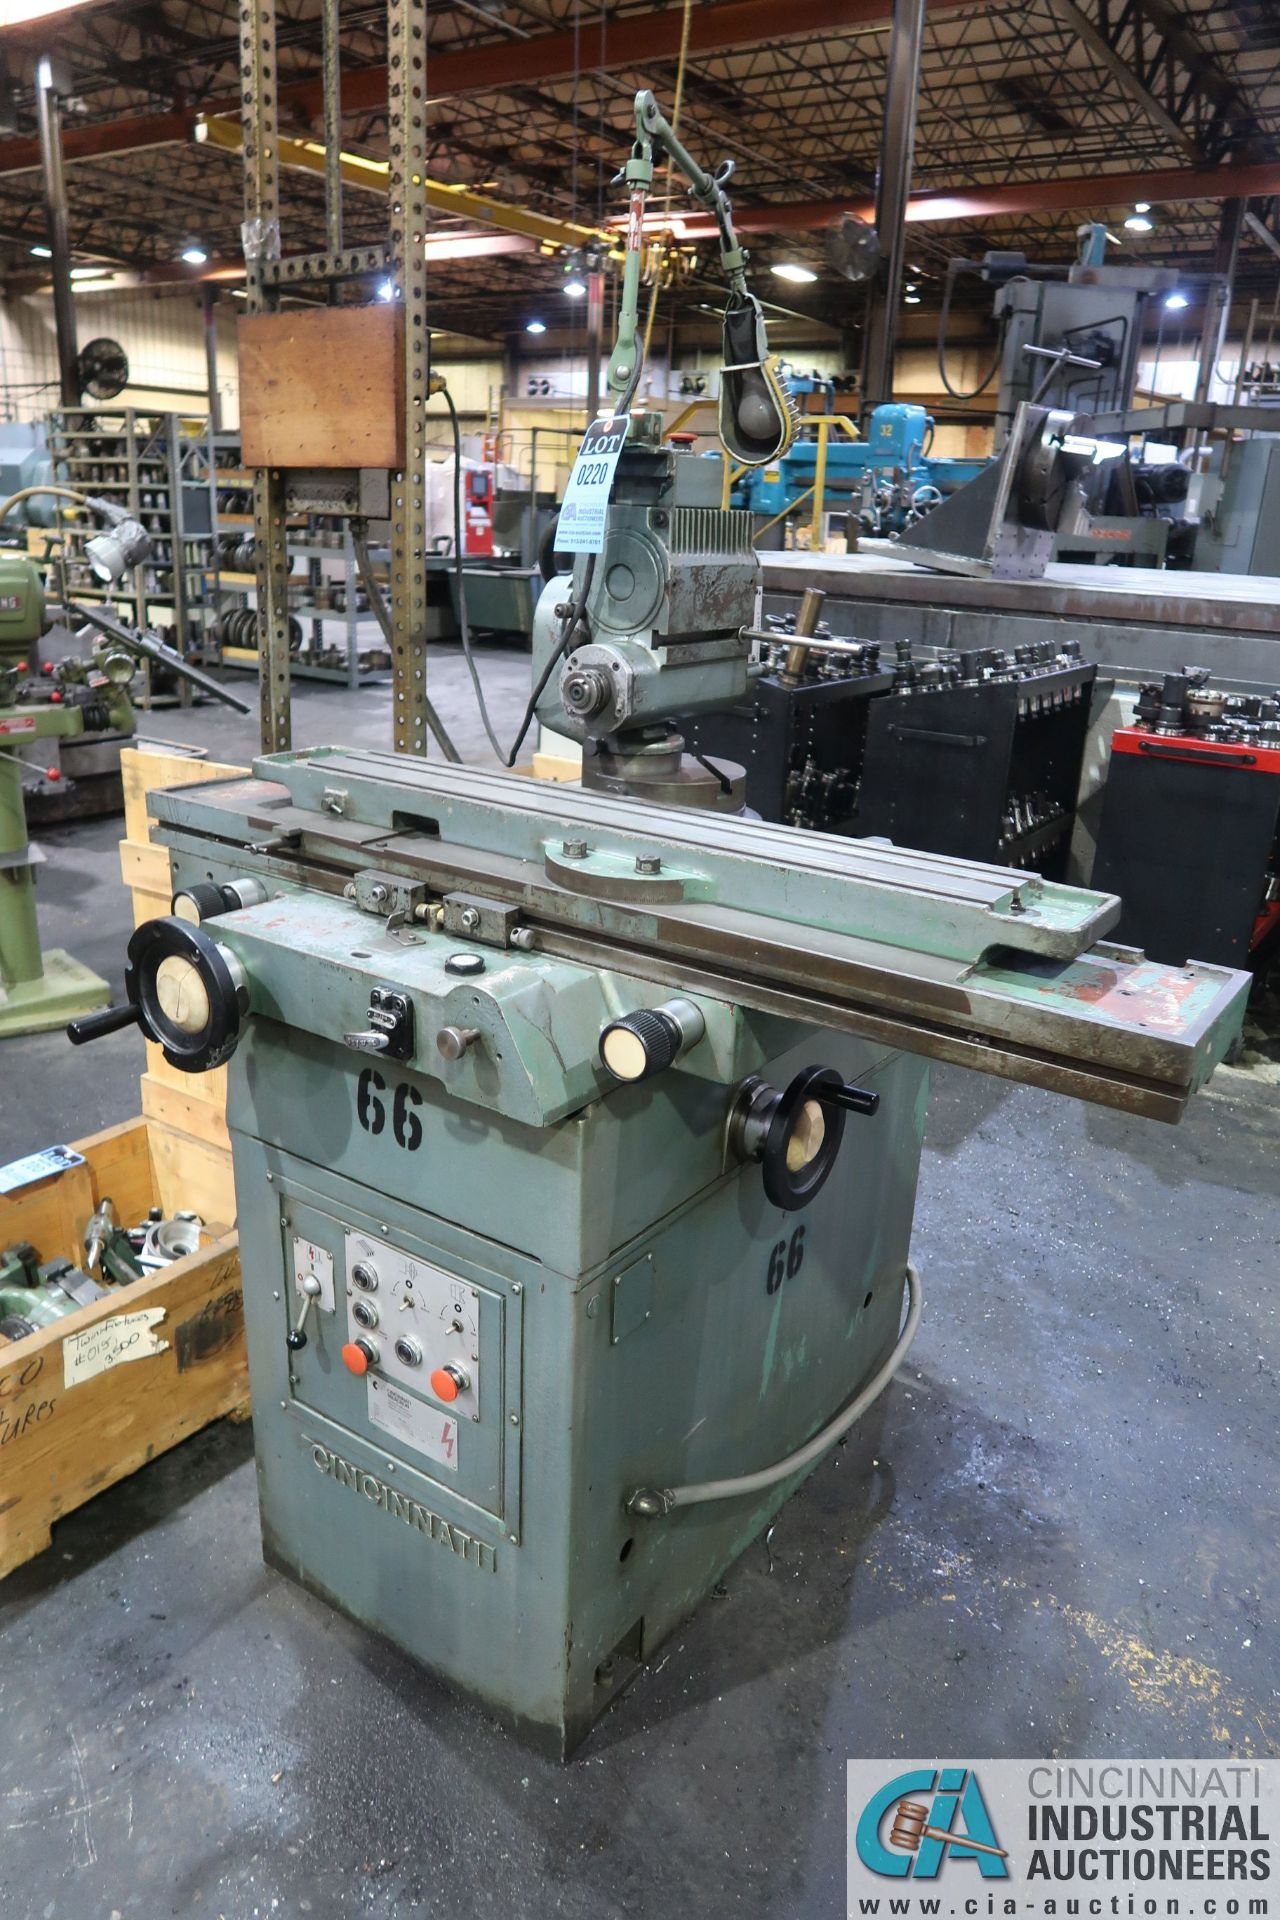 CINCINNATI TYPE MT TOOL GRINDER; S/N 1D2F1ABF-15, WITH (1) WOOD CRATE MISCELLANEOUS FIXTURES (NEW - Image 2 of 11